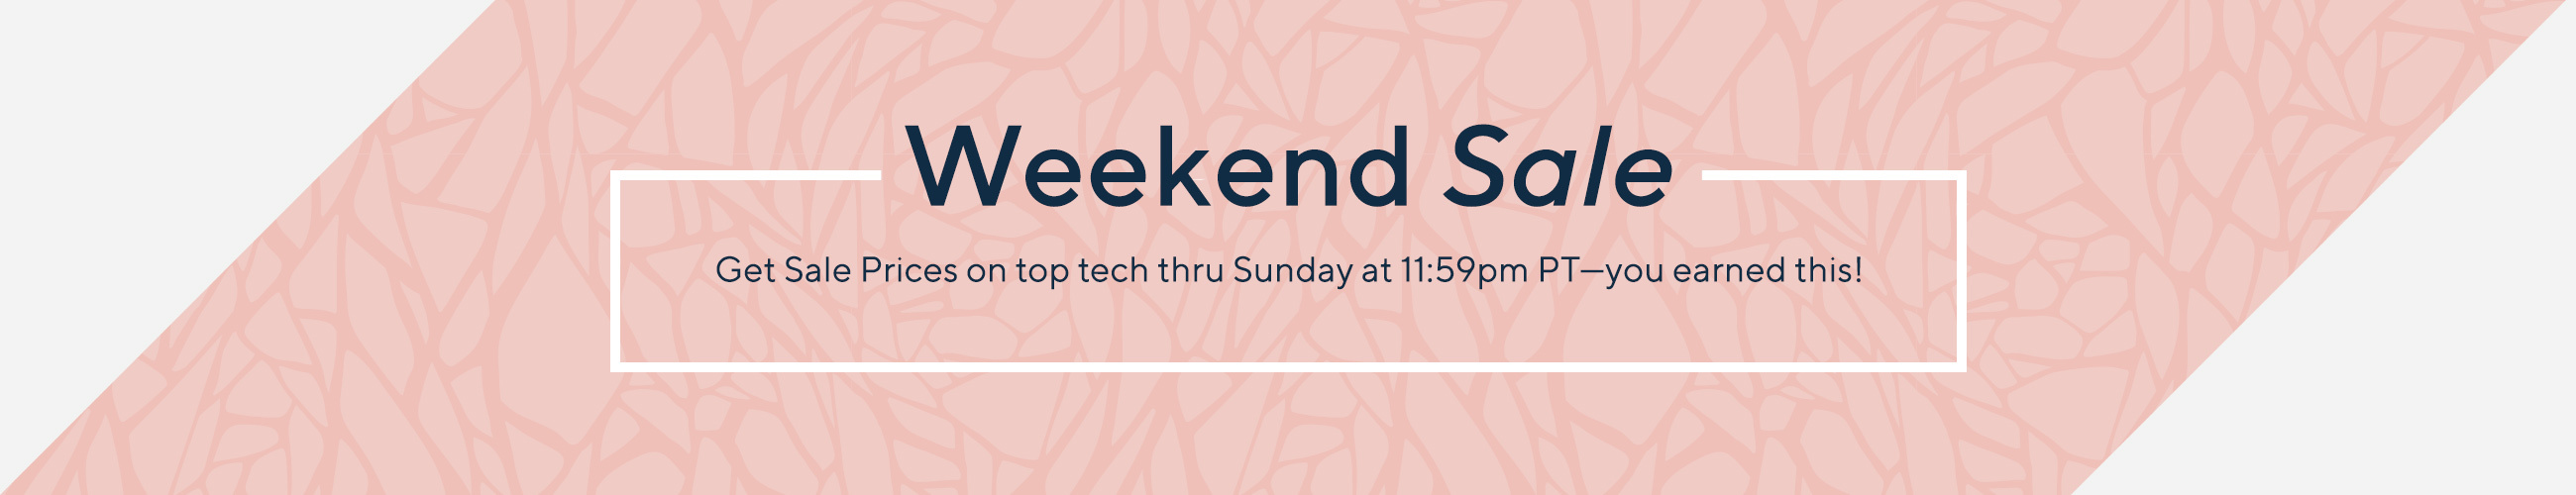 Weekend Sale  Get Sale Prices on top tech thru Sunday at 11:59pm PT—you earned this!